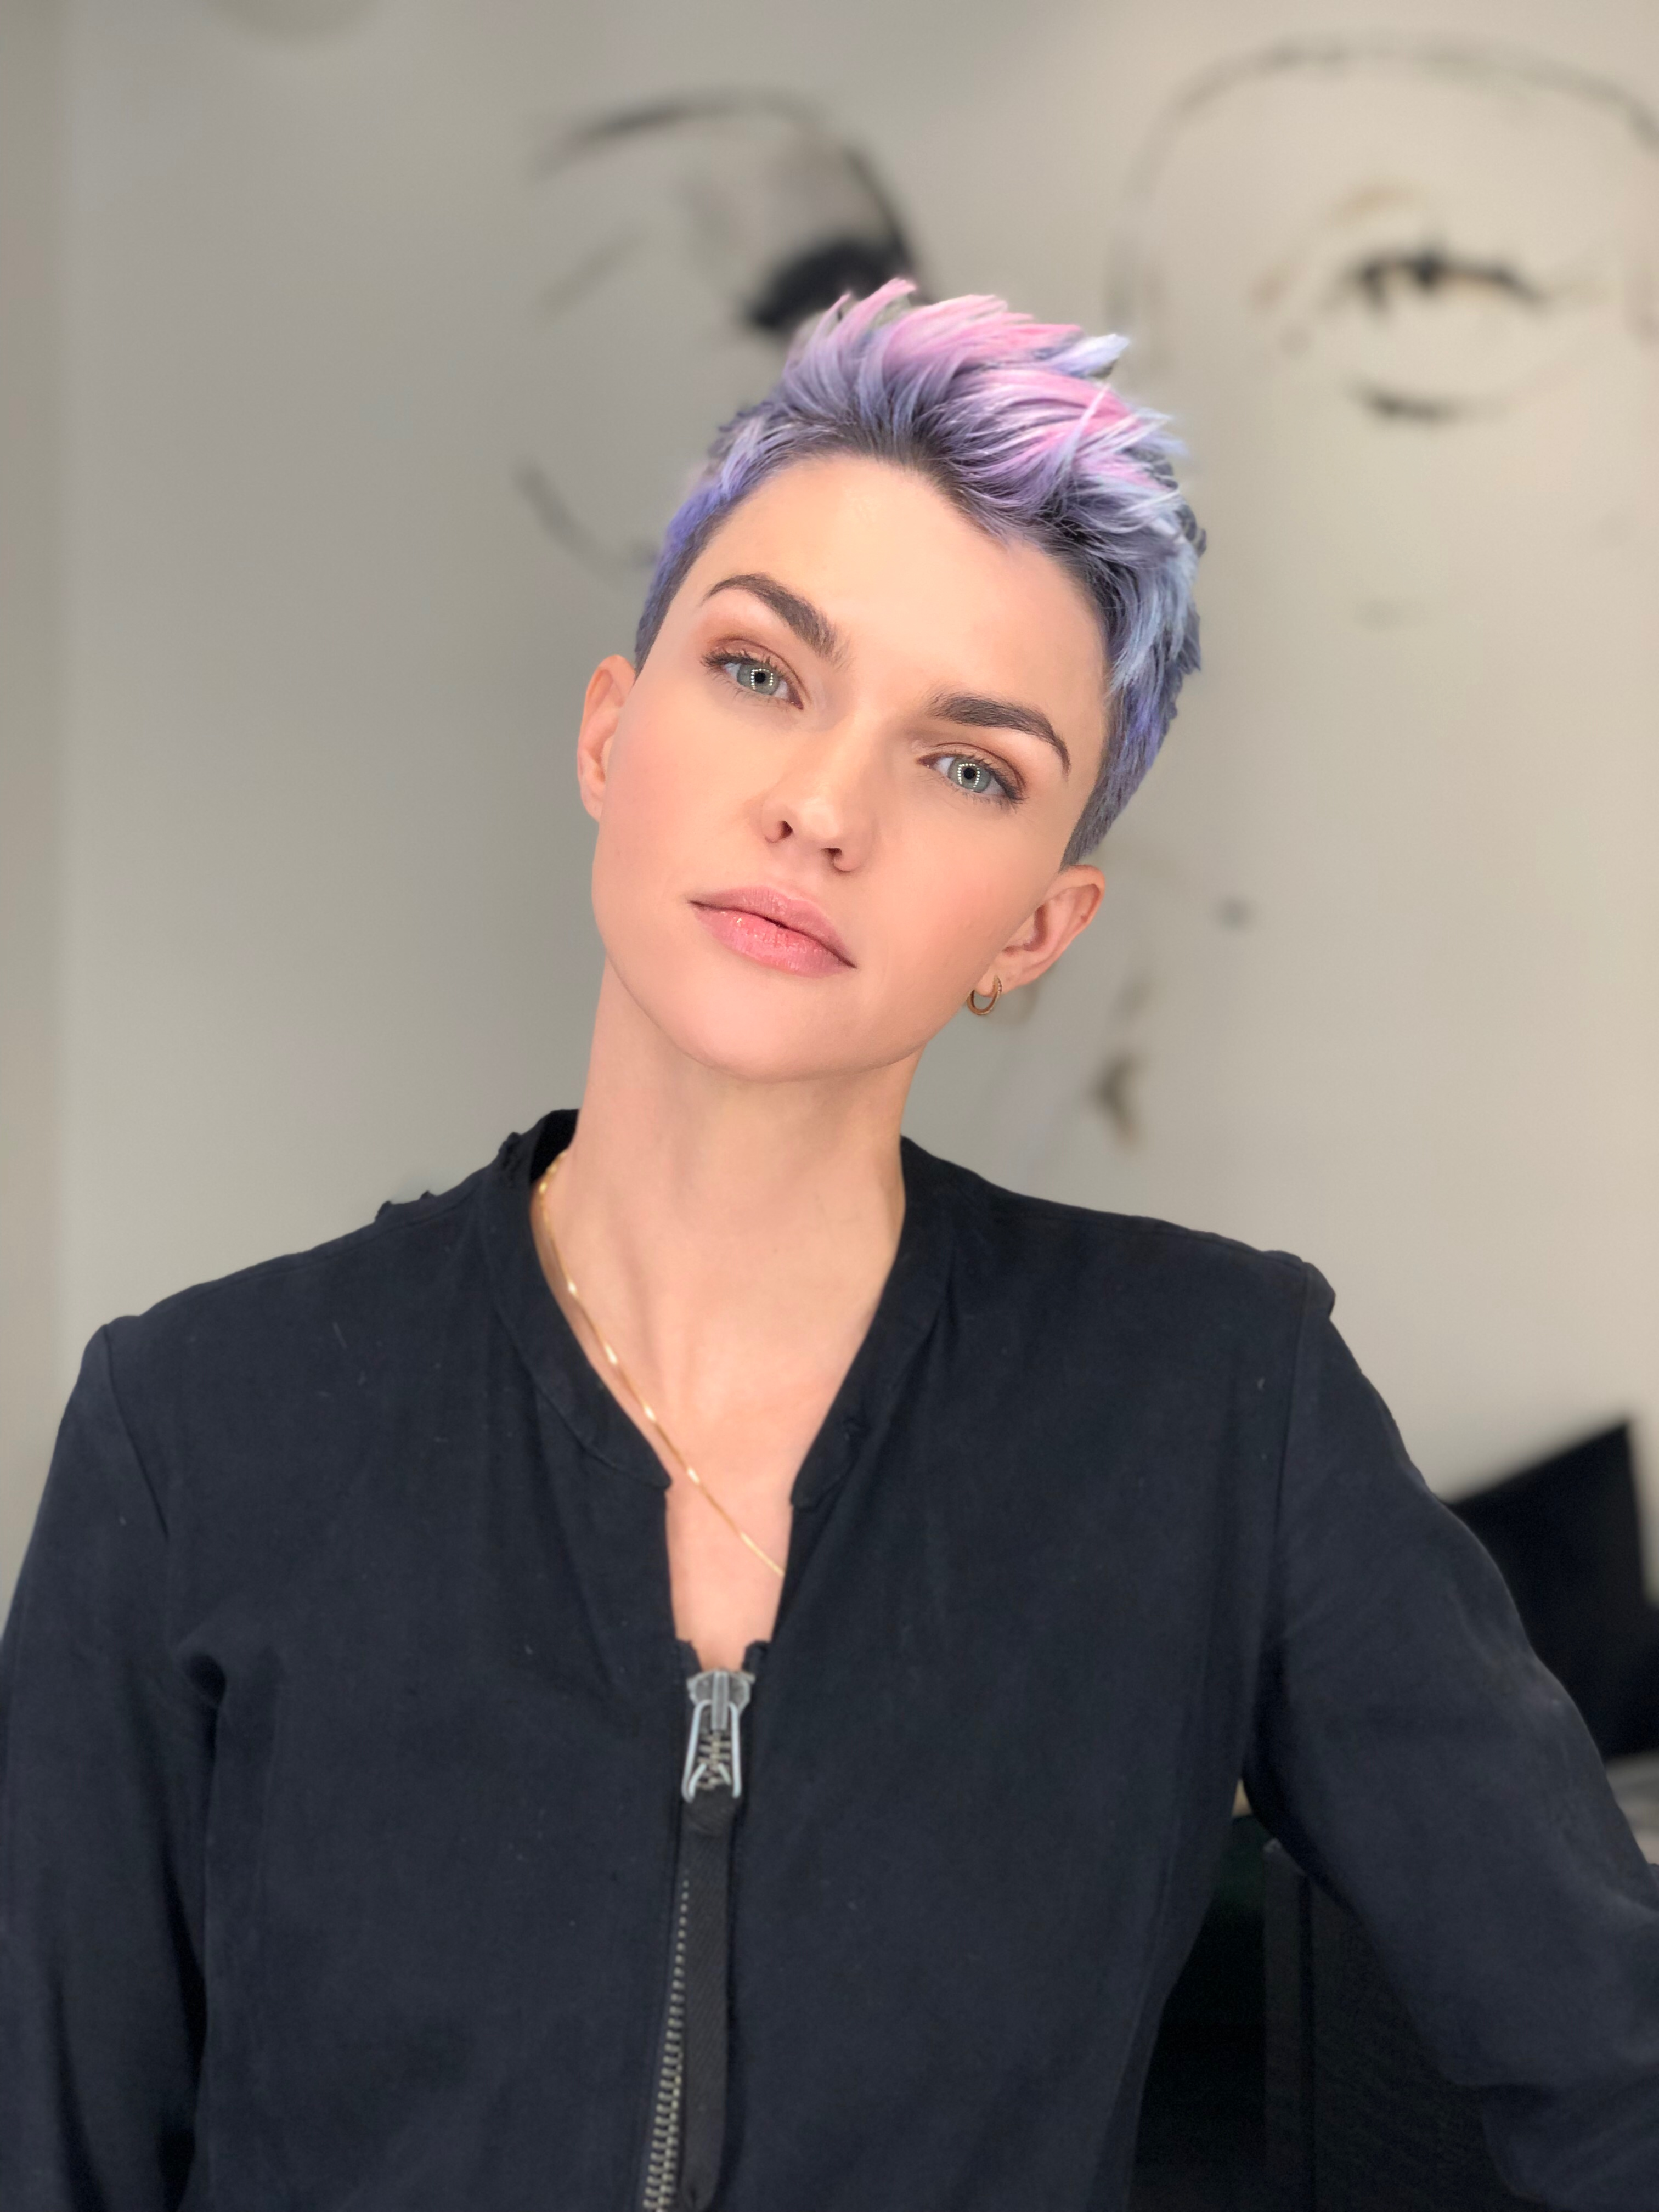 In our eyes, Ruby Rose can do no wrong. The actress and model has the ultimate cool factor and, not to mention, is totally stunning.